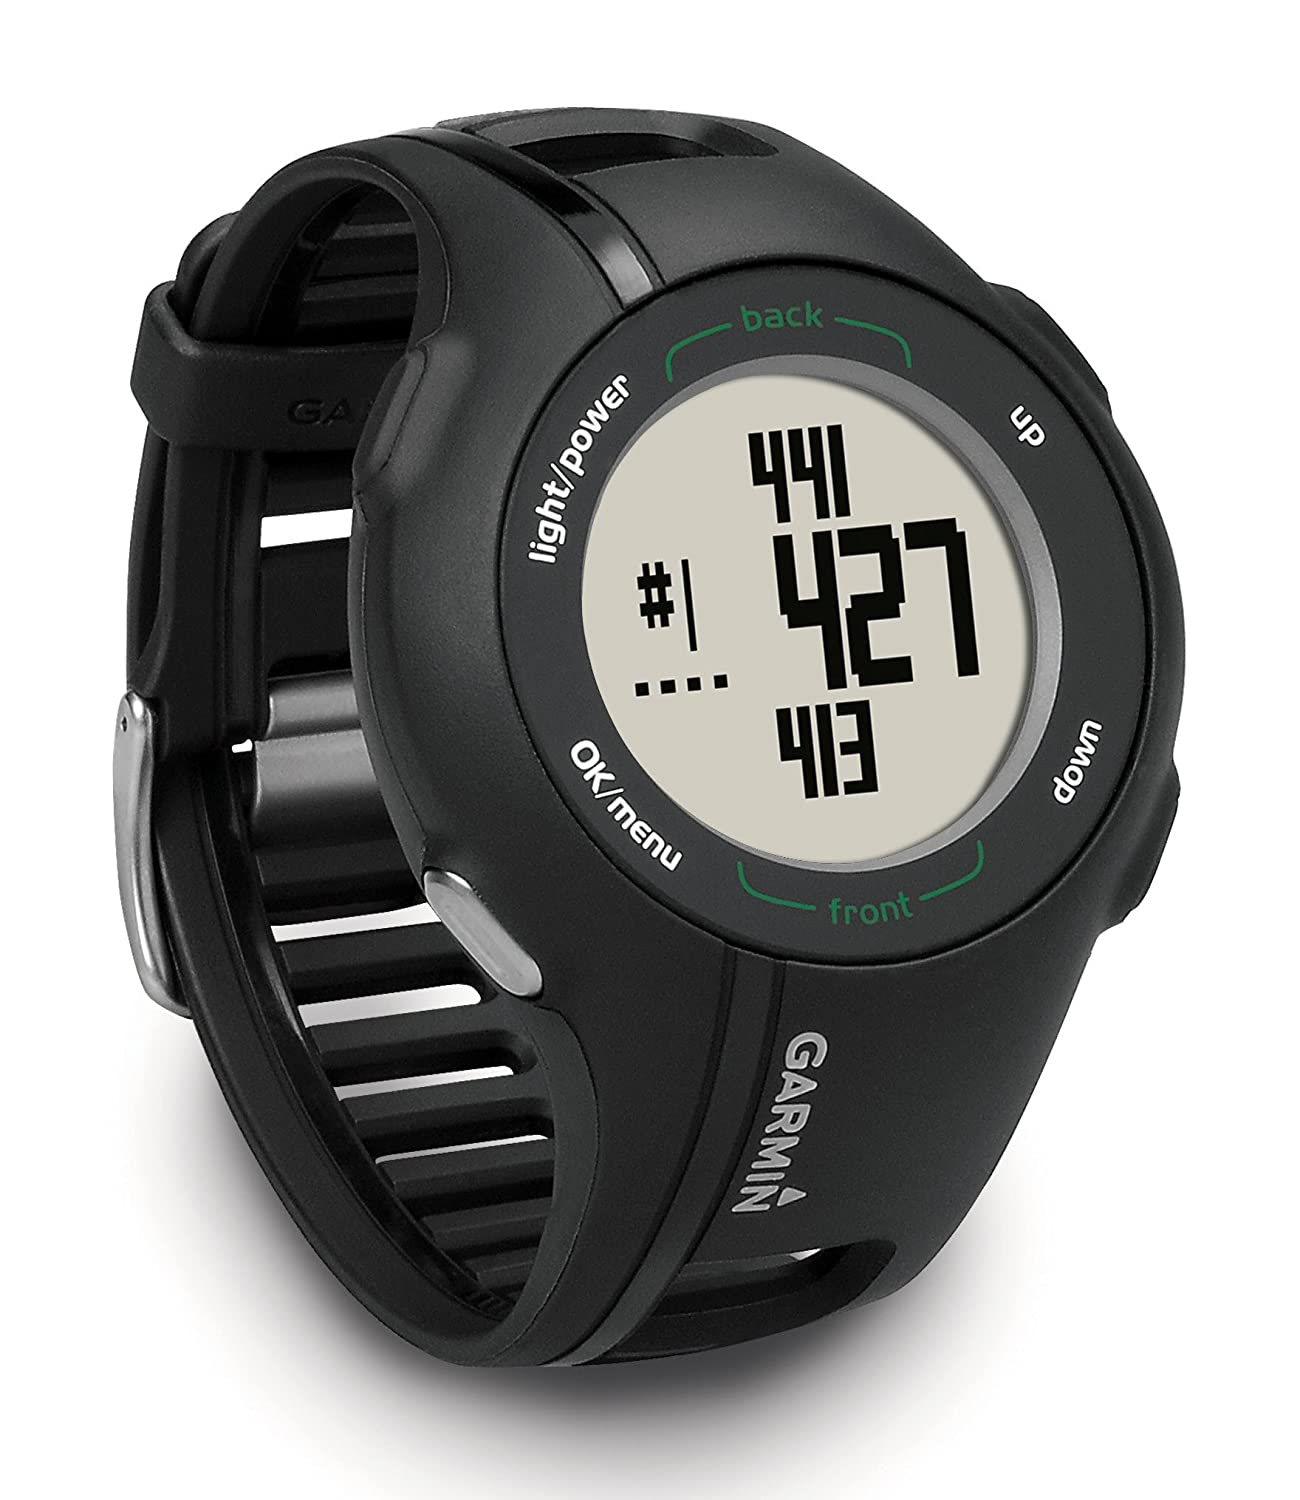 Garmin Approach S1 - What to Get your Dad for Christmas in 2016